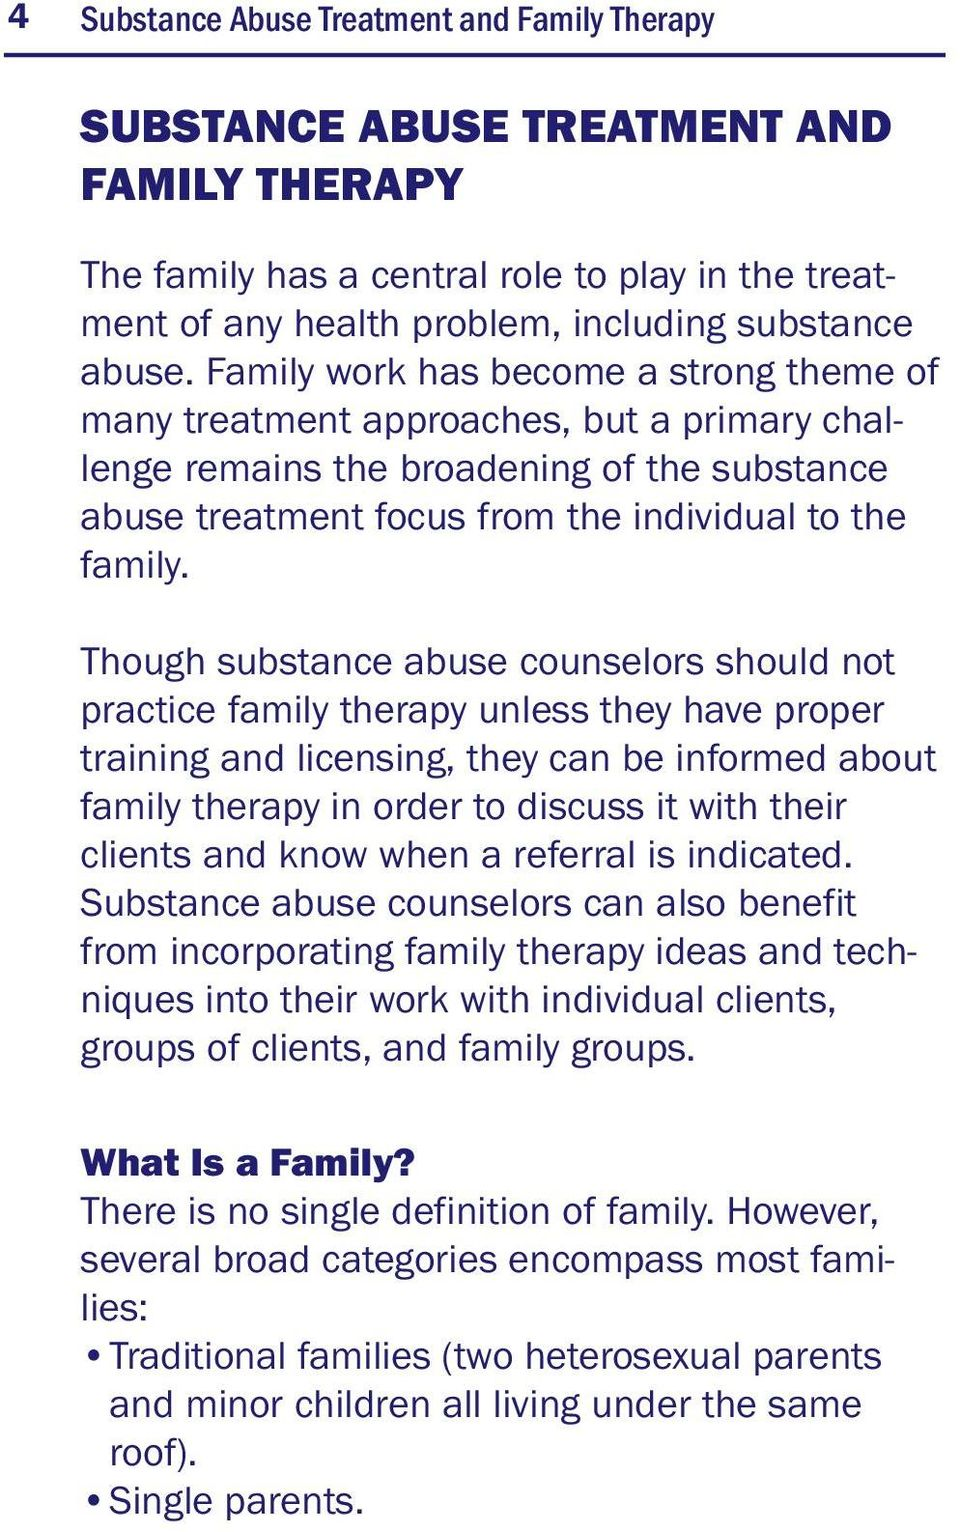 Though substance abuse counselors should not practice family therapy unless they have proper training and licensing, they can be informed about family therapy in order to discuss it with their